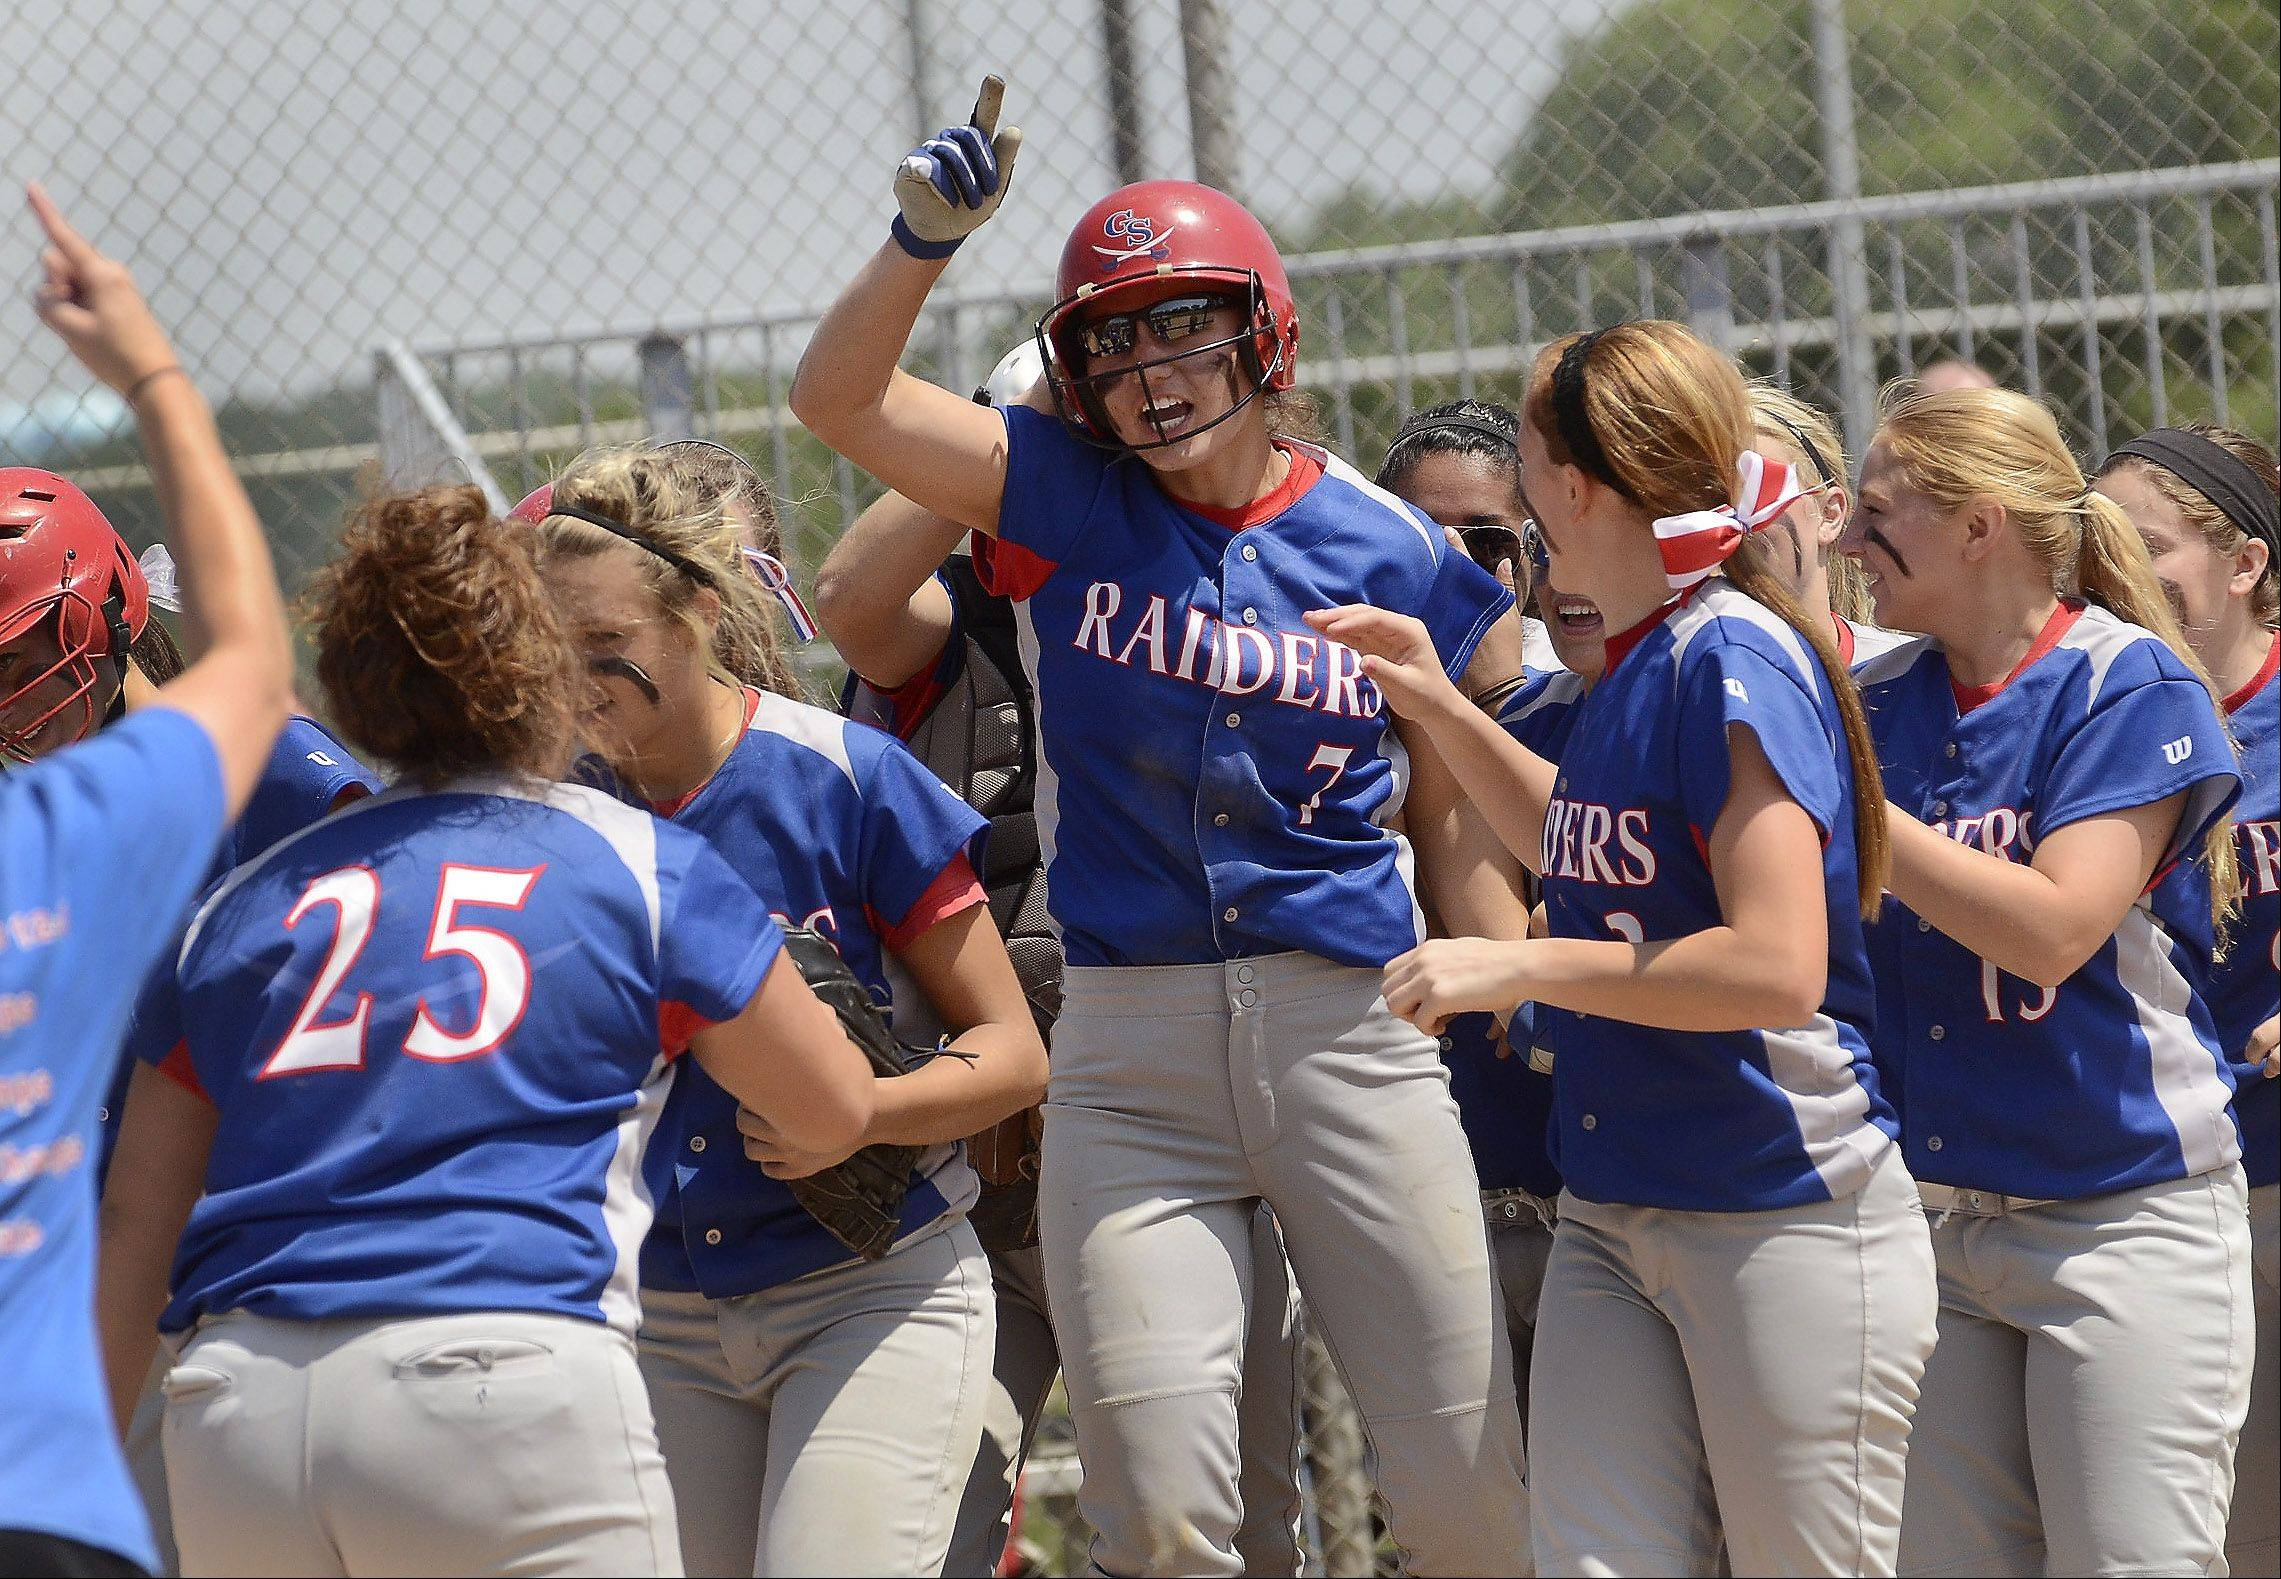 Glenbard South's Hannah Taylor celebrates with her teammates after hitting a two-run home run in the 4th inning of the Class 3A state semifinal between Glenbard South and Tinley Park.